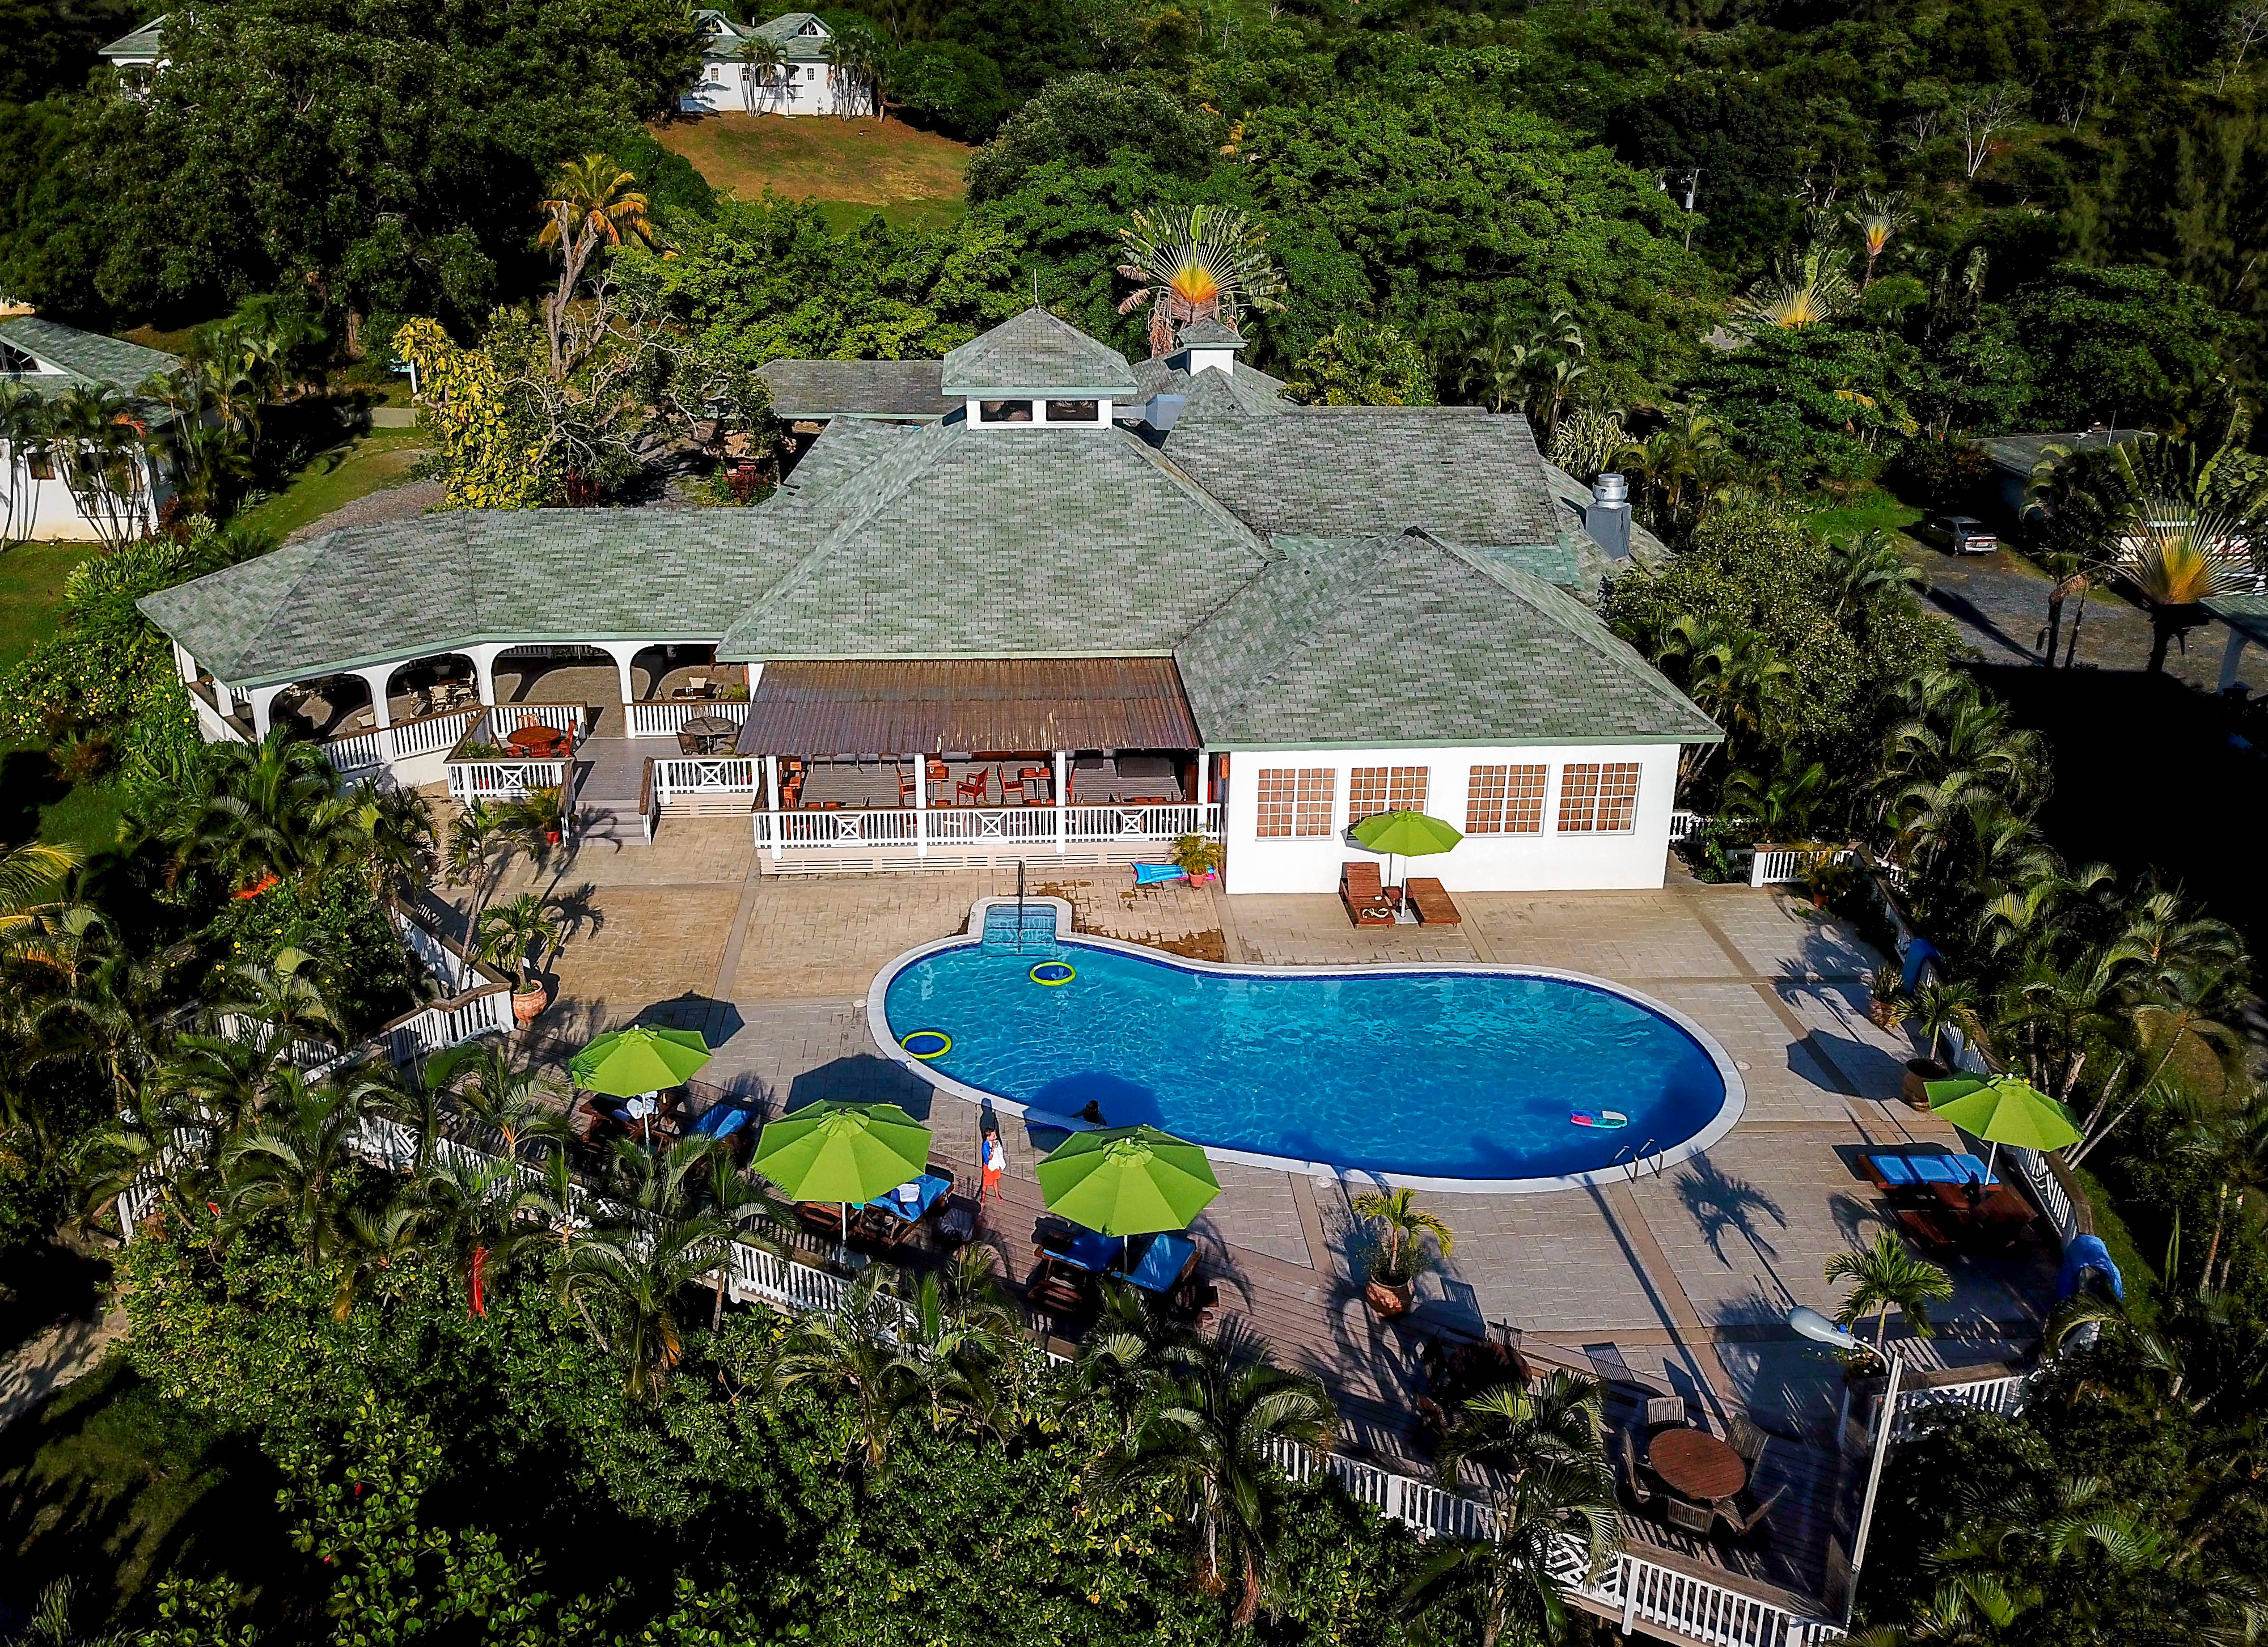 Turquoise Bay Dive and Beach Resort Pool and Resteraunt